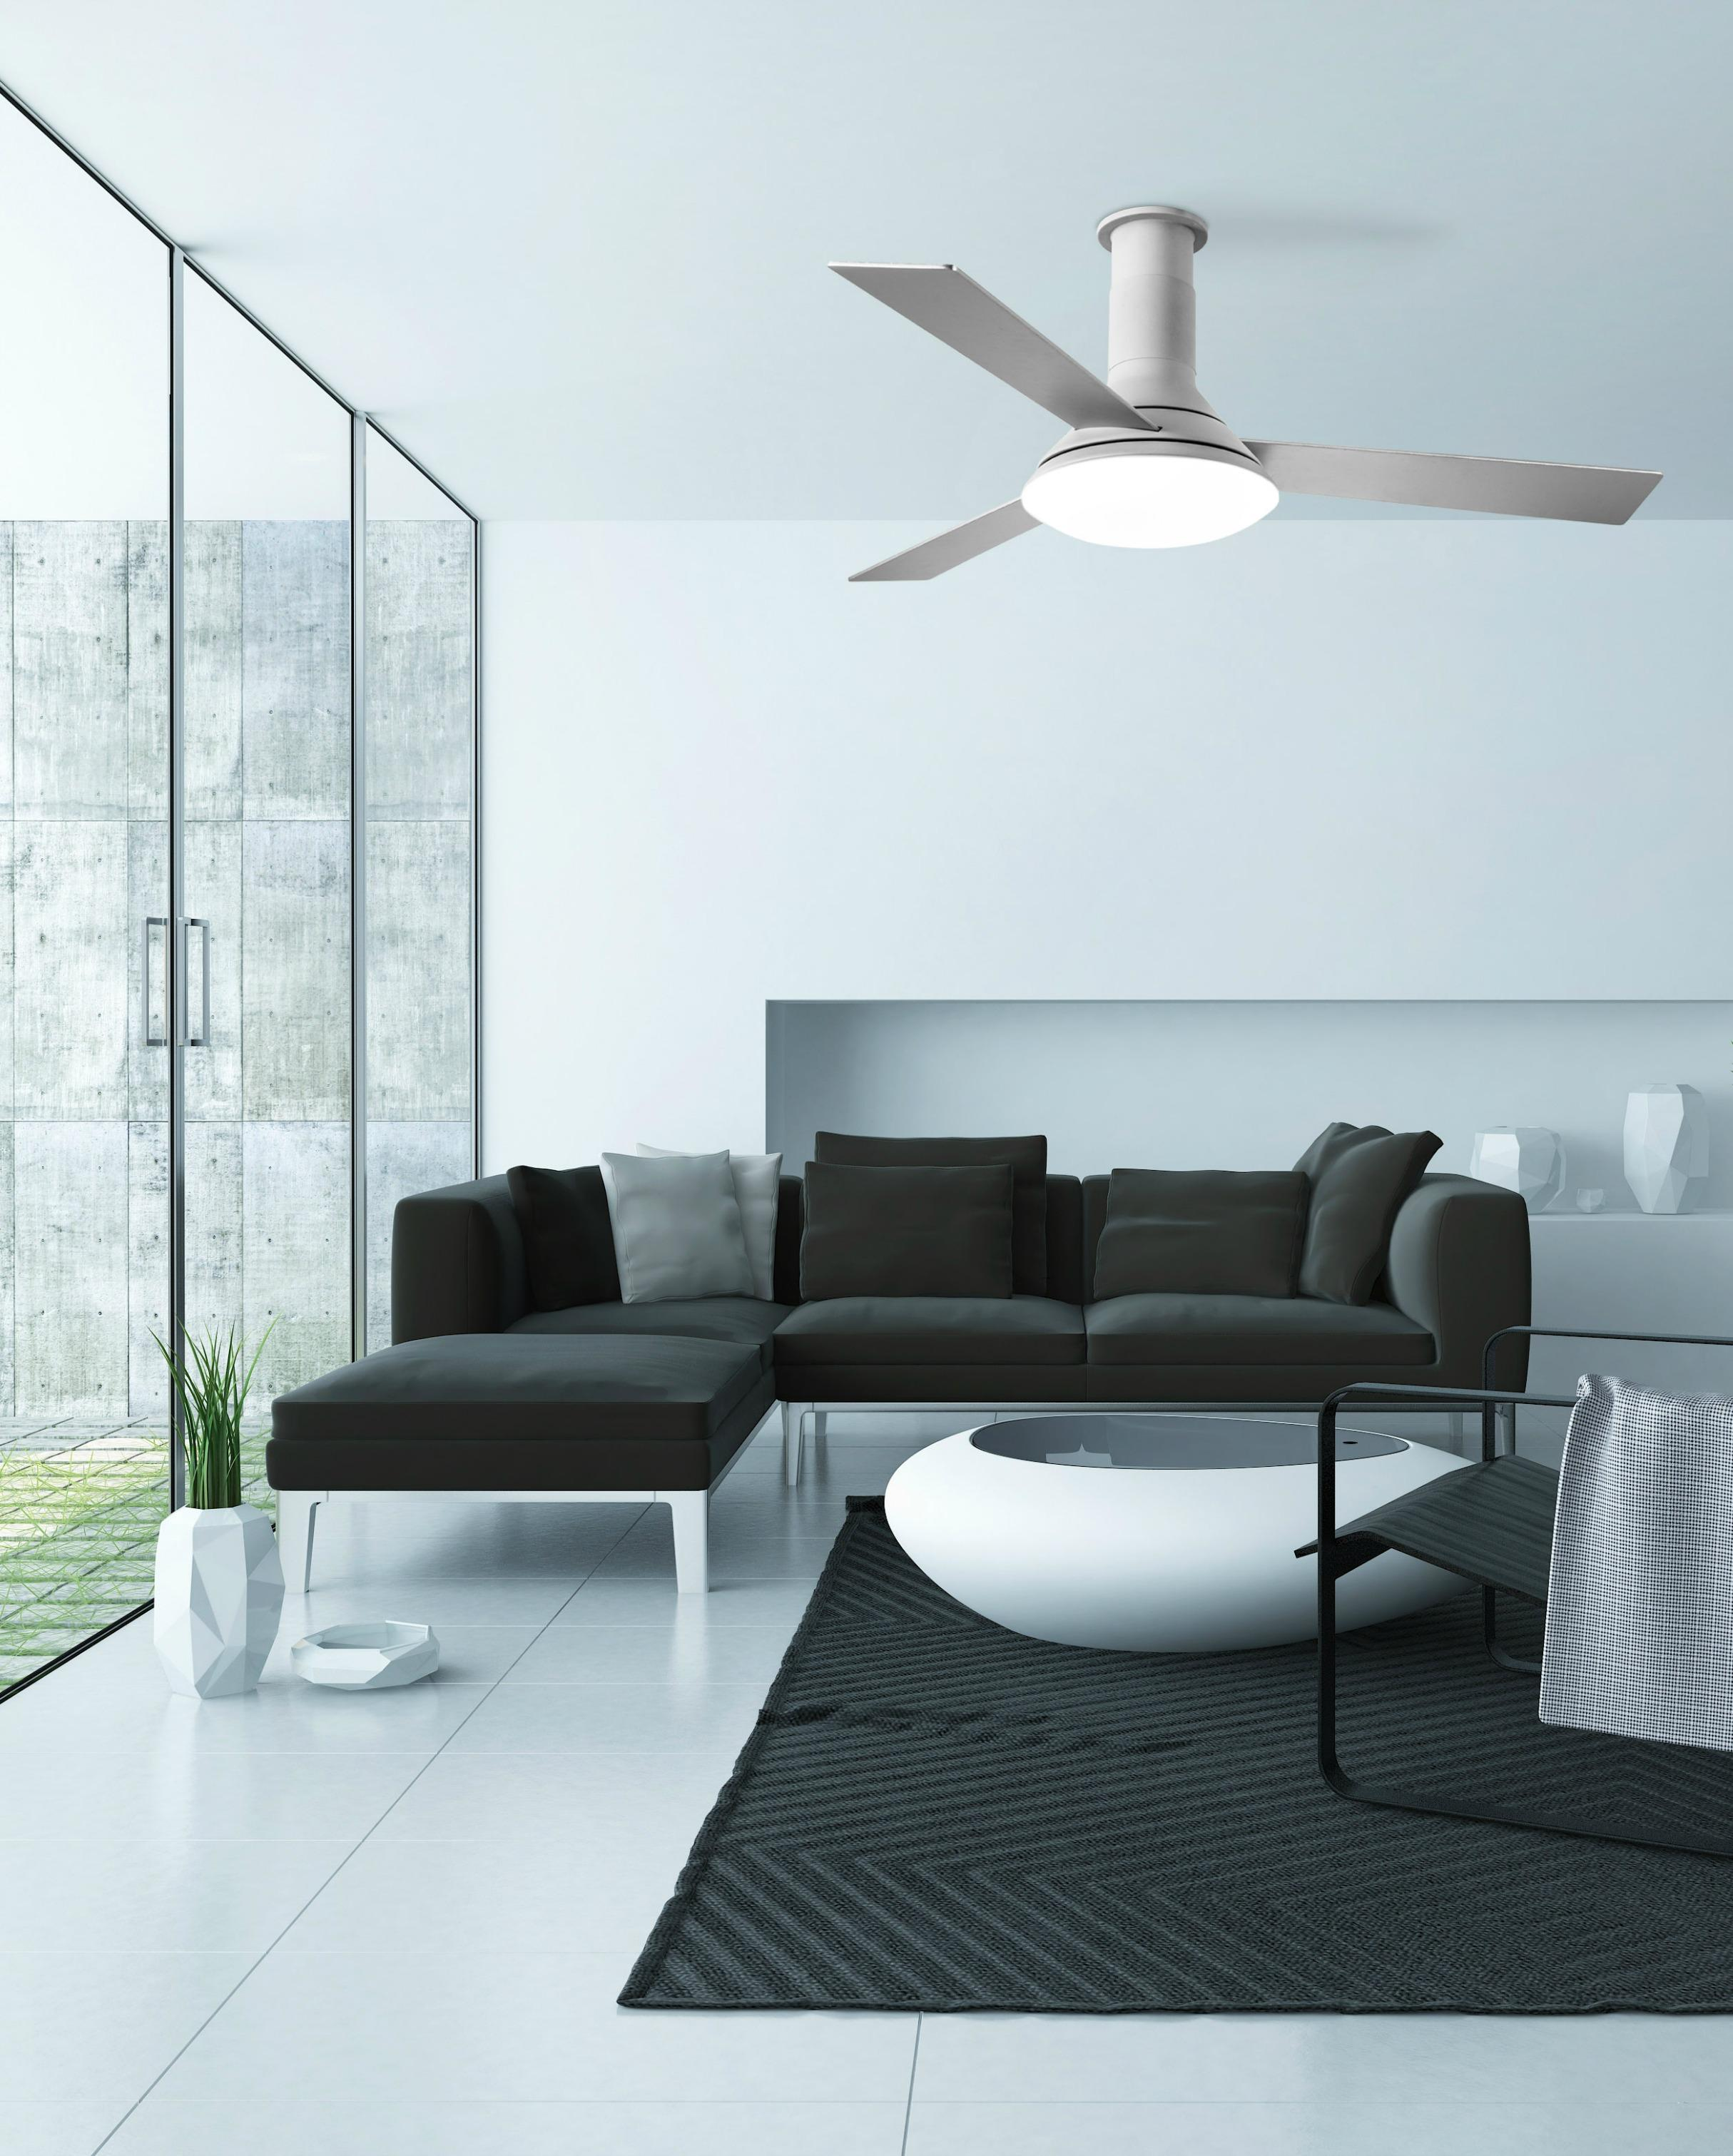 FUS ventilatore da soffitto e LED